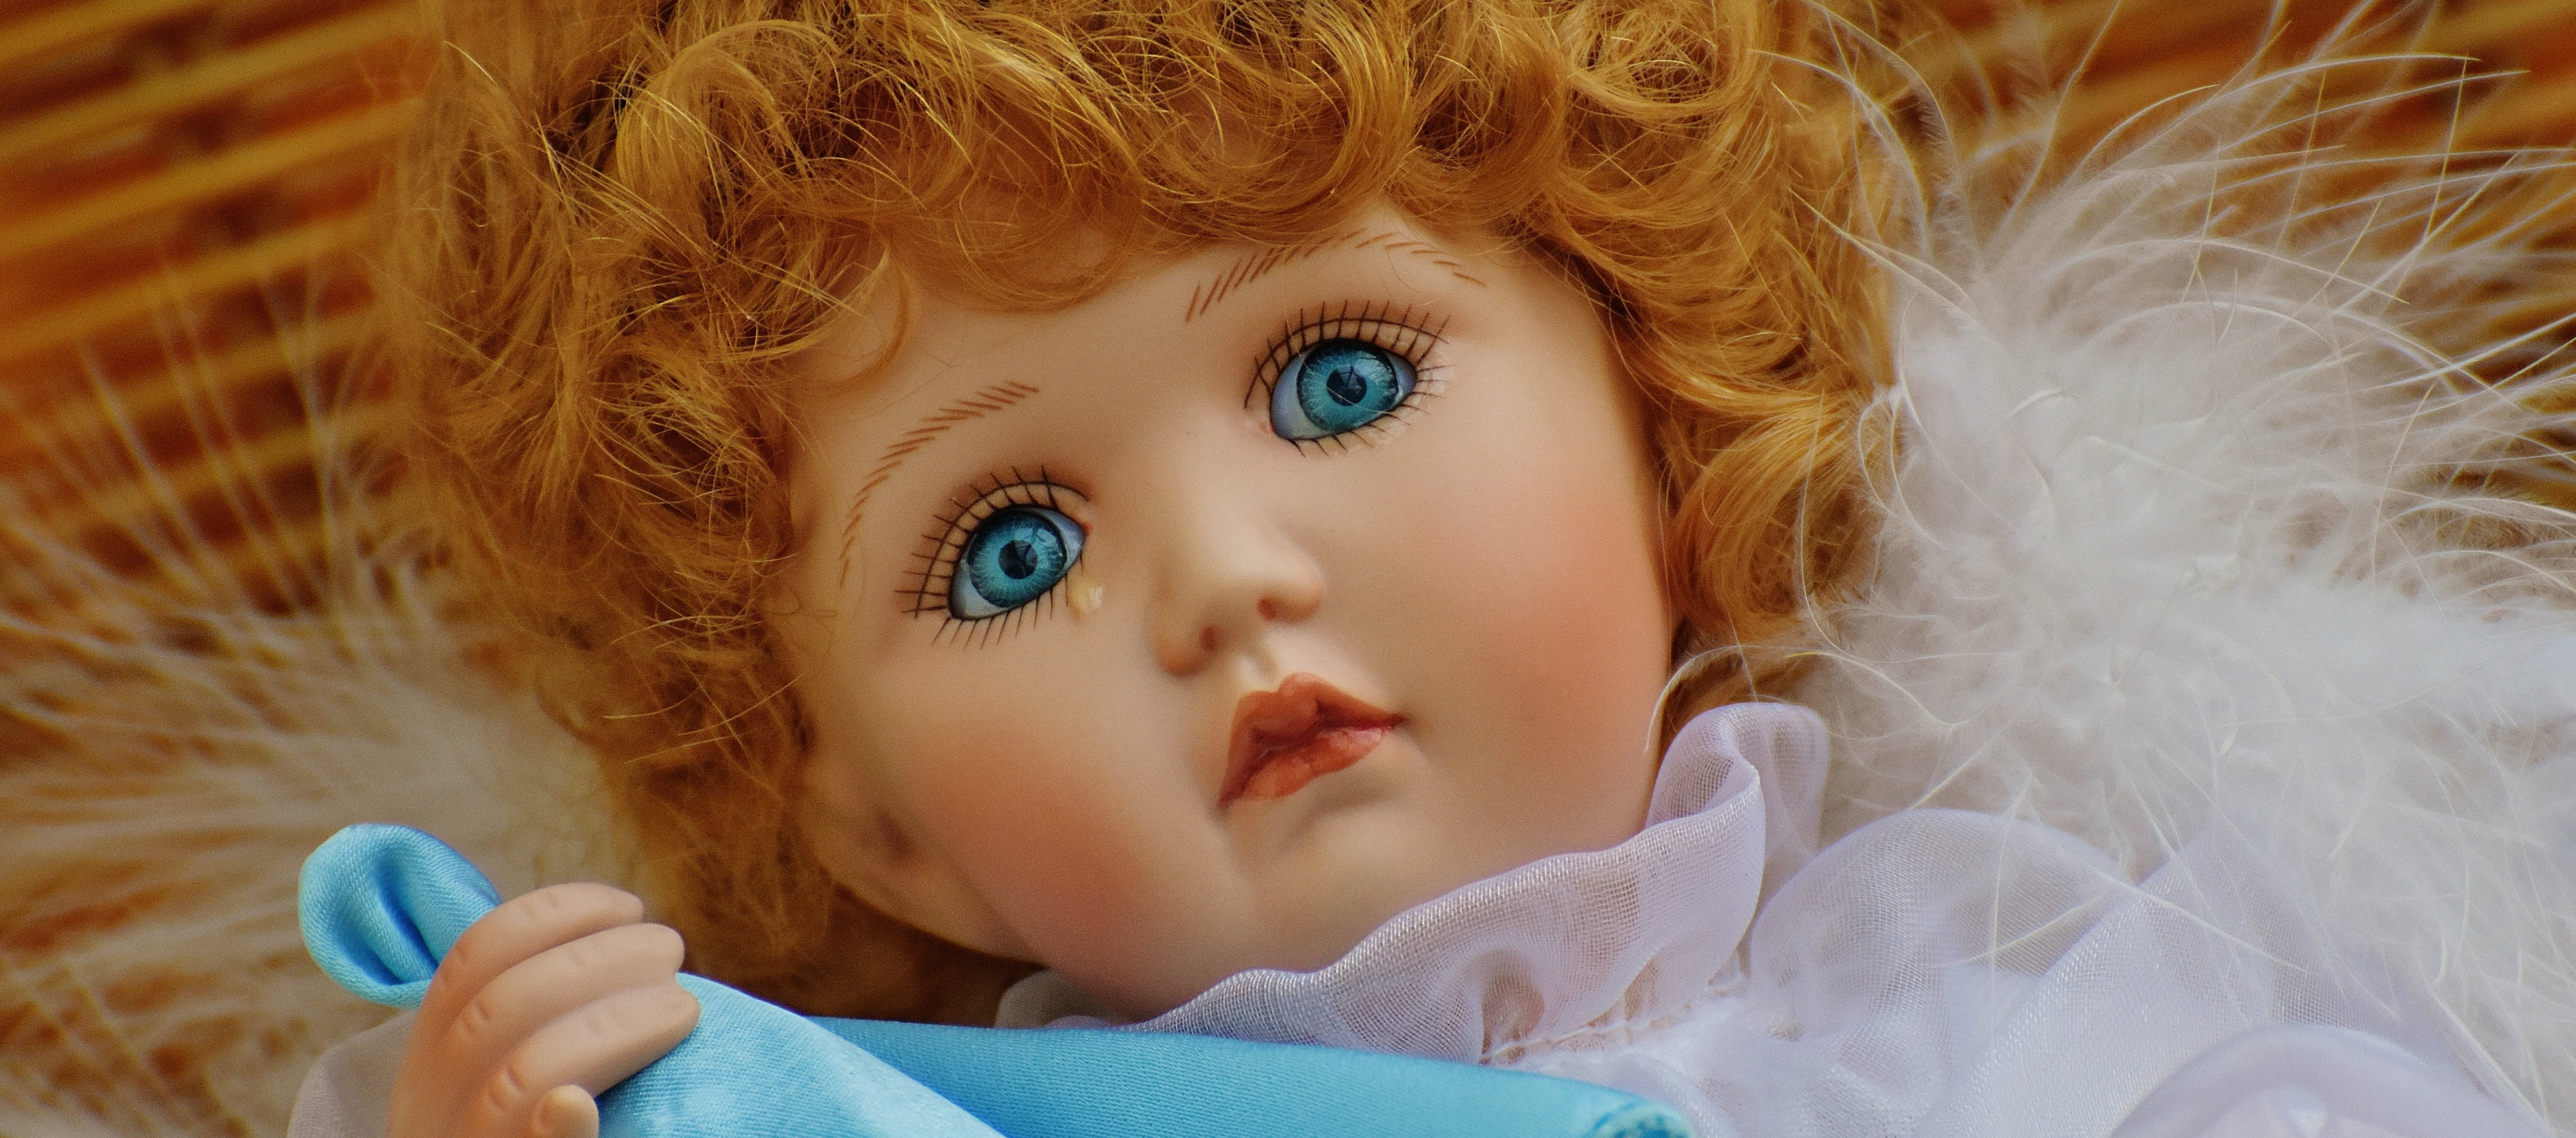 Free stock photo of angel, children, collector's doll, cute